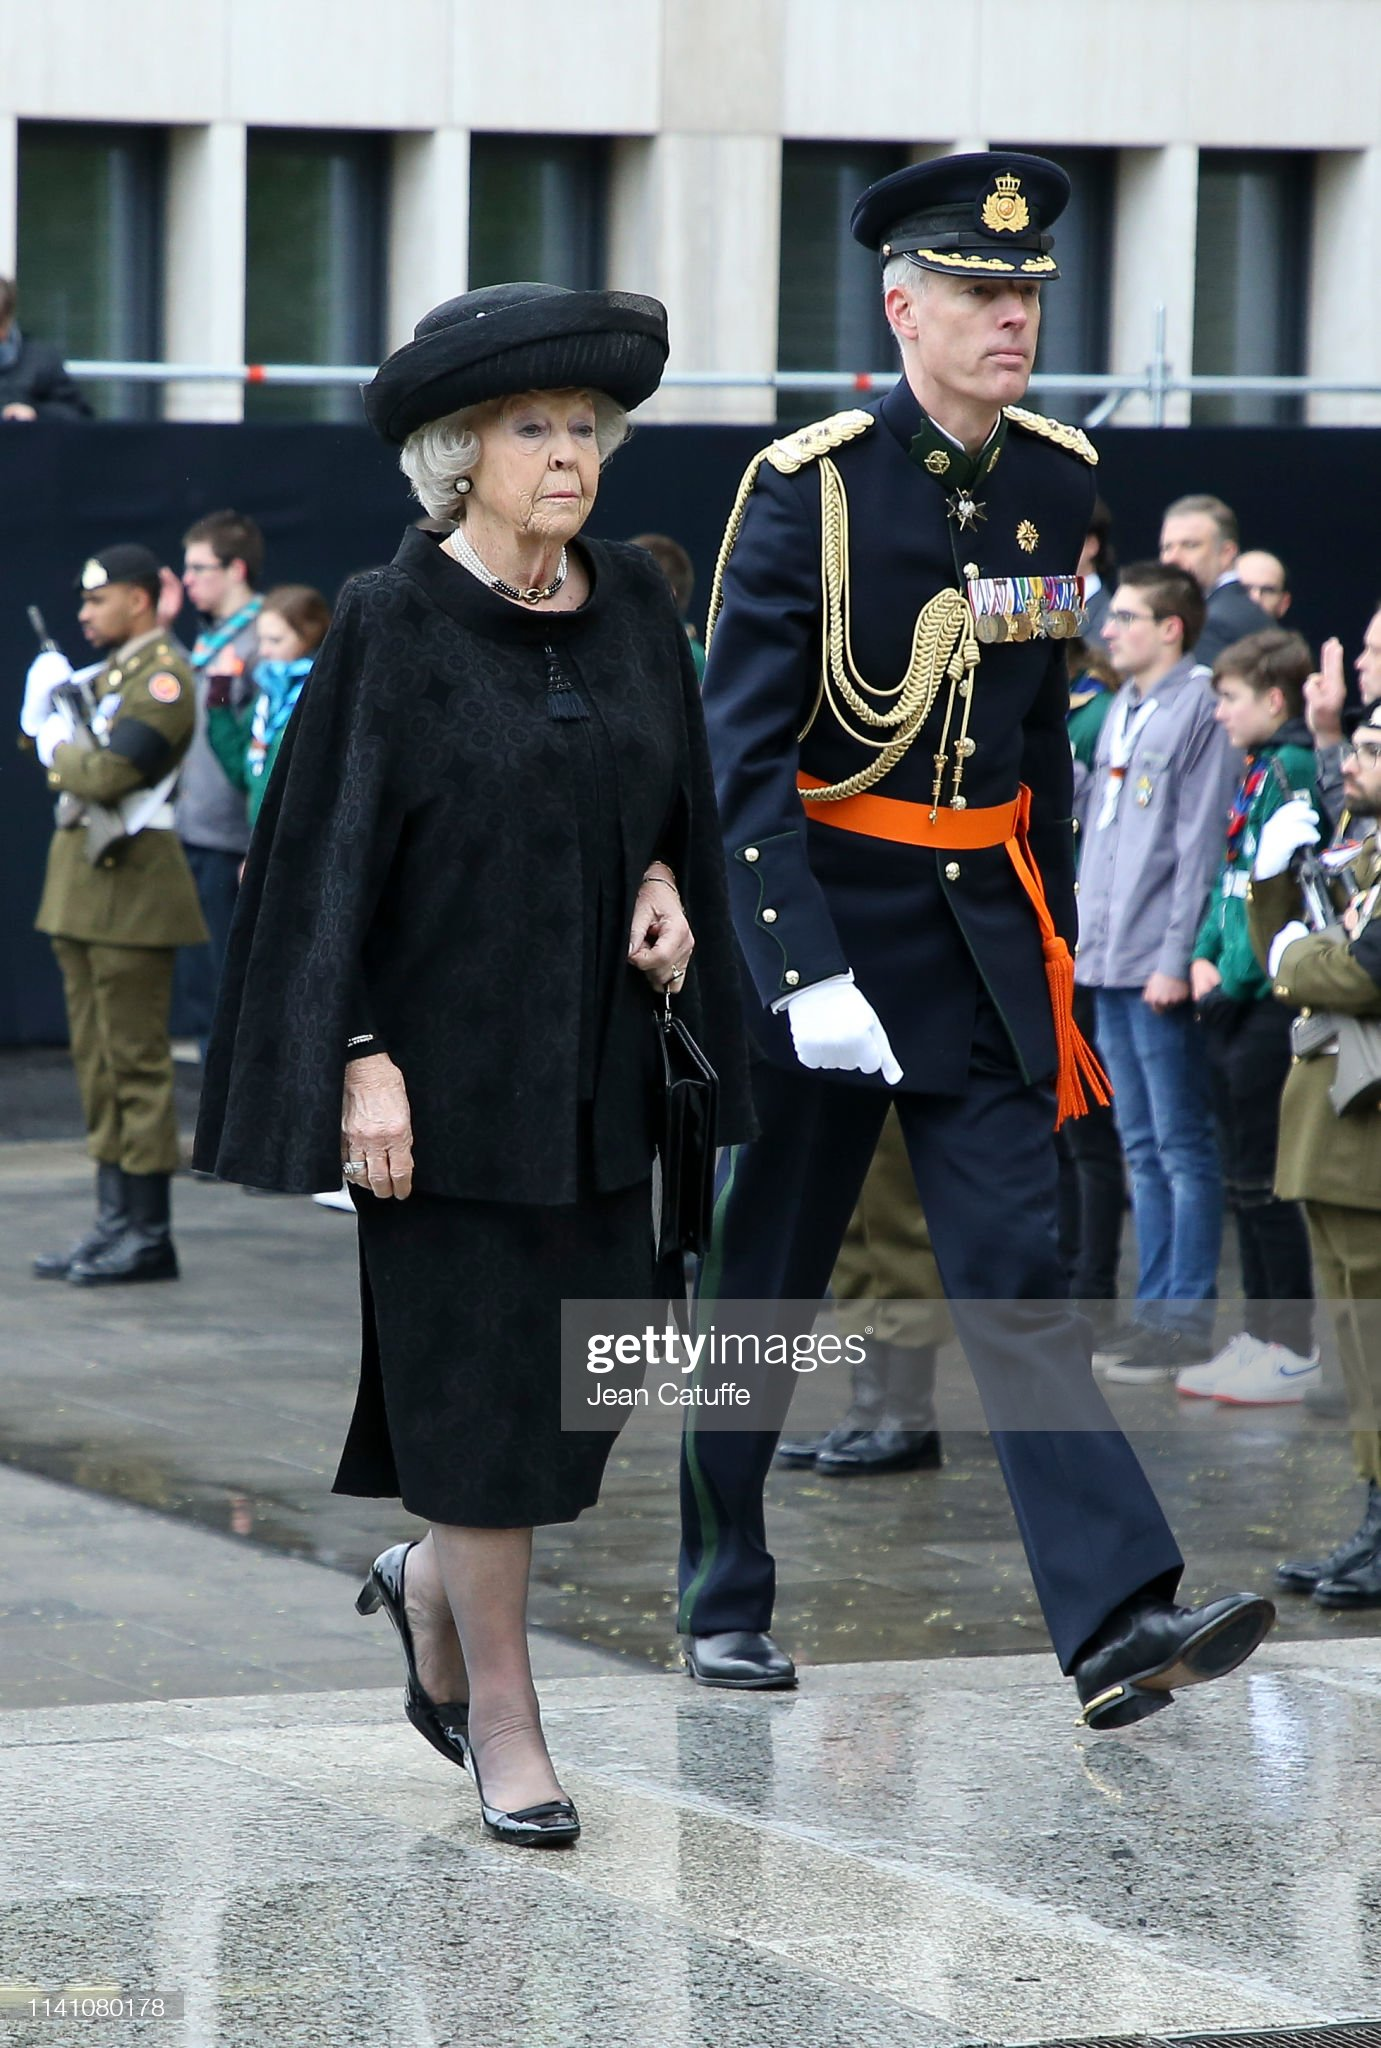 Похороны Великого Герцога Жана https://media.gettyimages.com/photos/princess-beatrix-of-the-netherlands-arrives-for-the-funeral-of-grand-picture-id1141080178?s=2048x2048